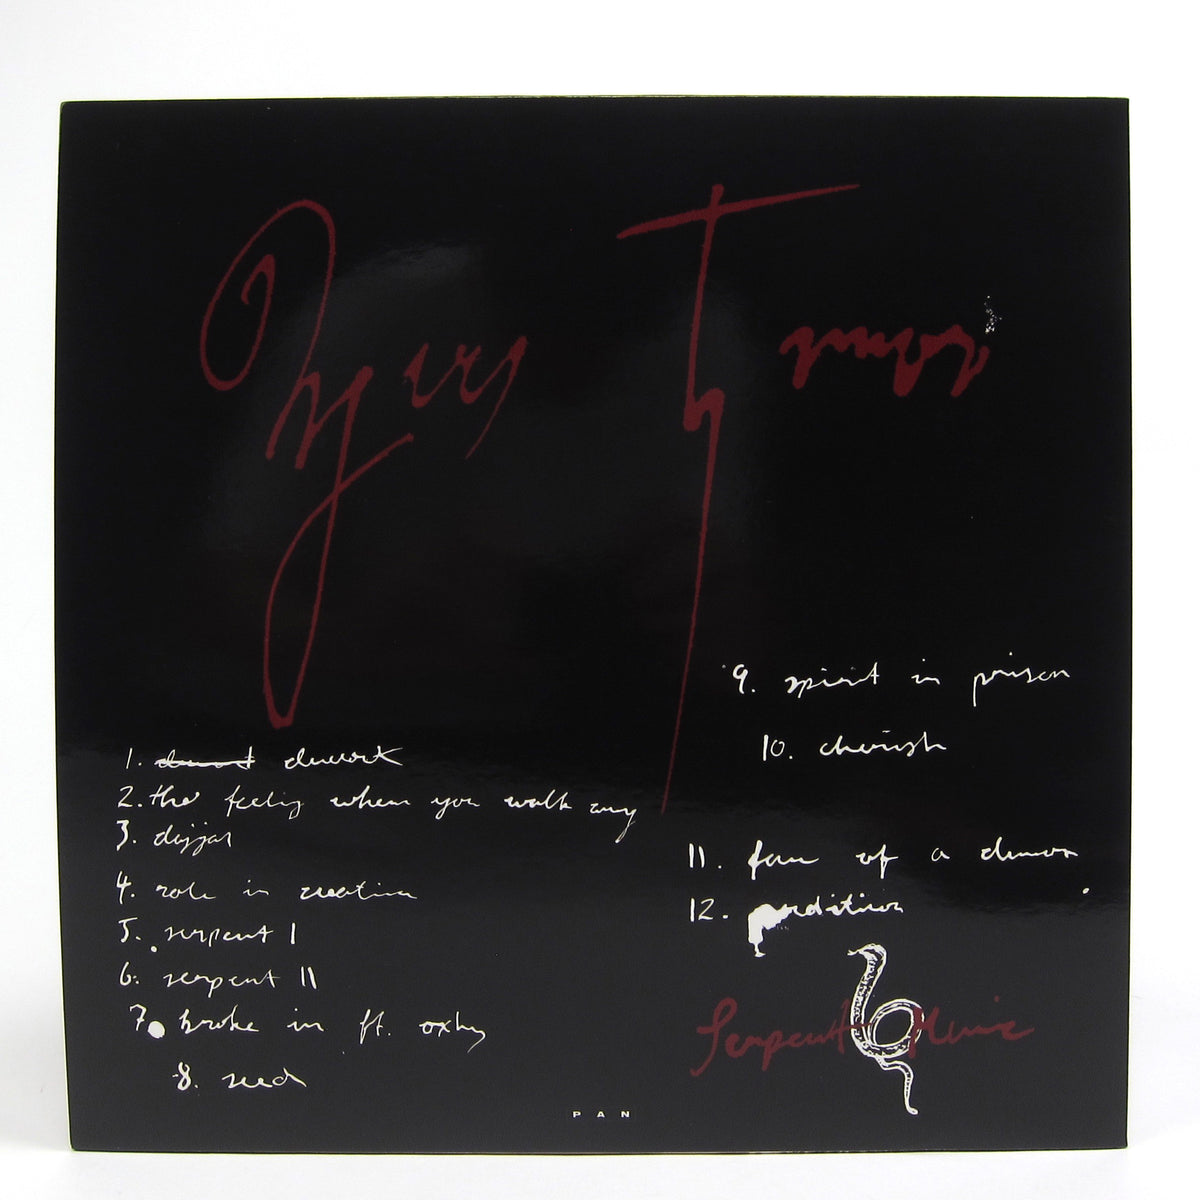 Yves Tumor: Serpent Music Vinyl LP